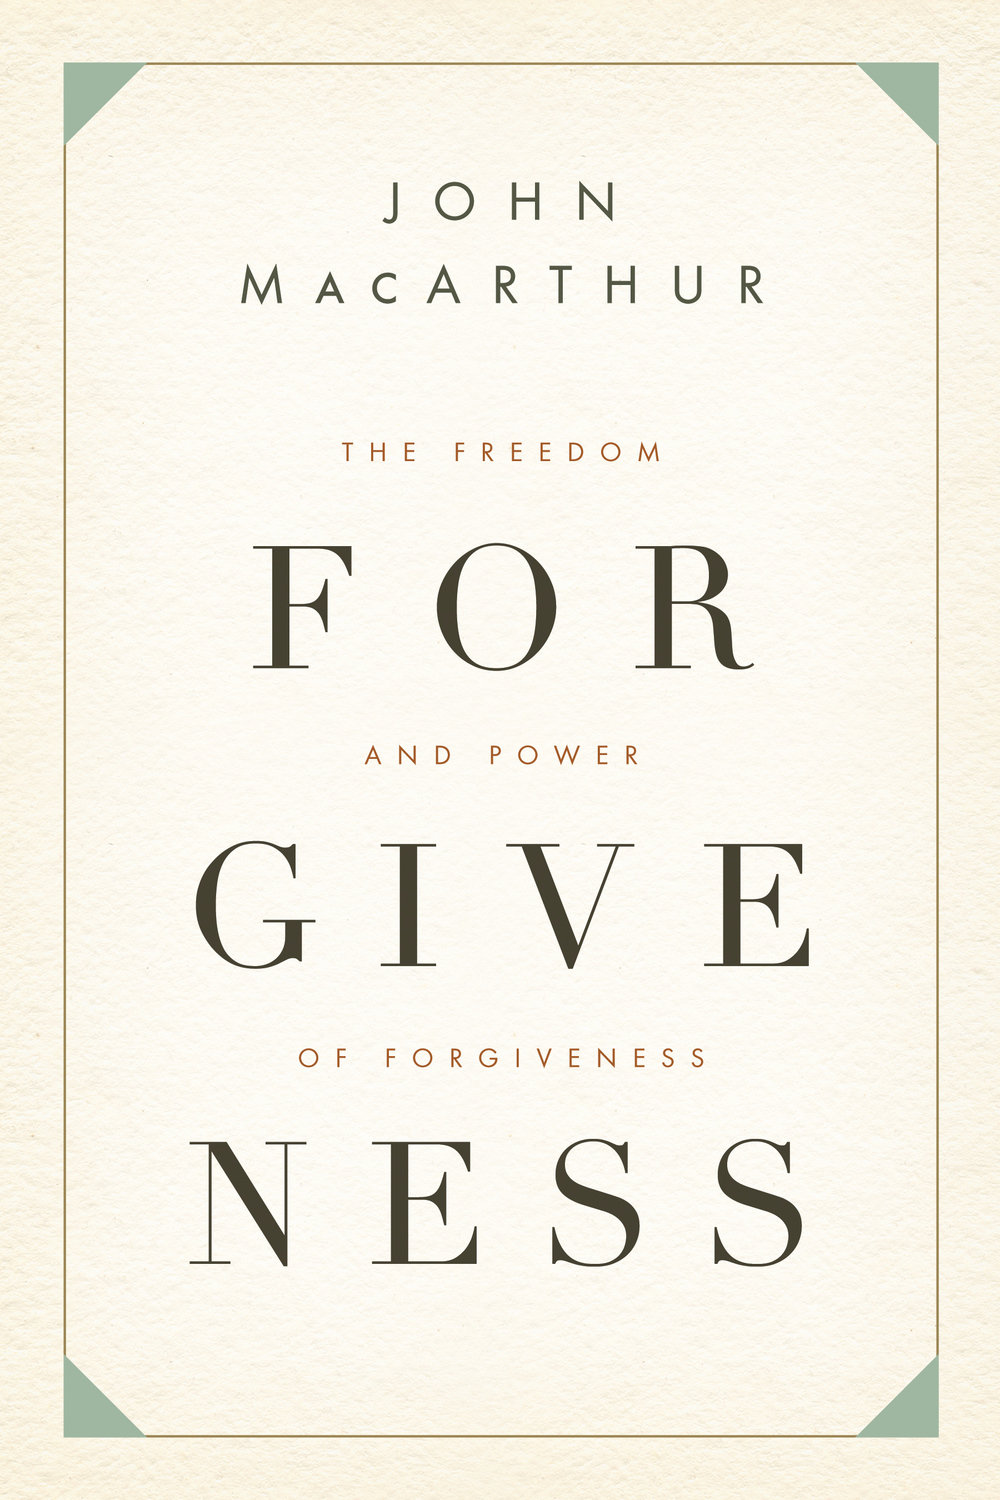 The Freedom and Power of Forgiveness